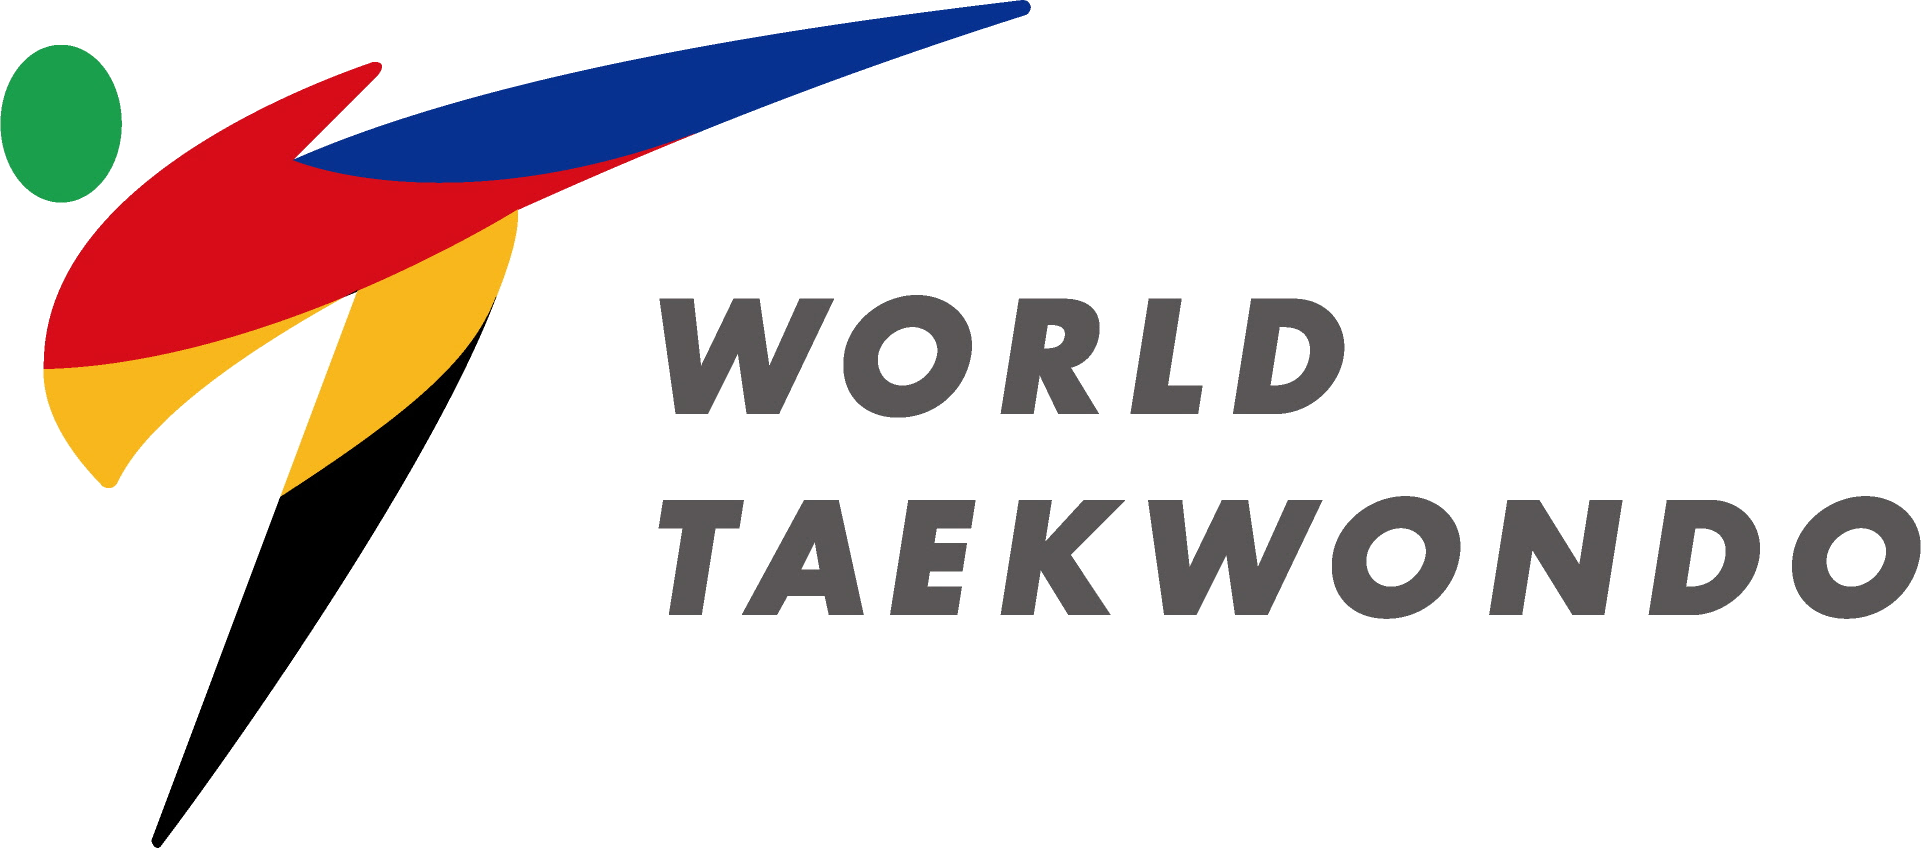 world taekwondo logo transparent